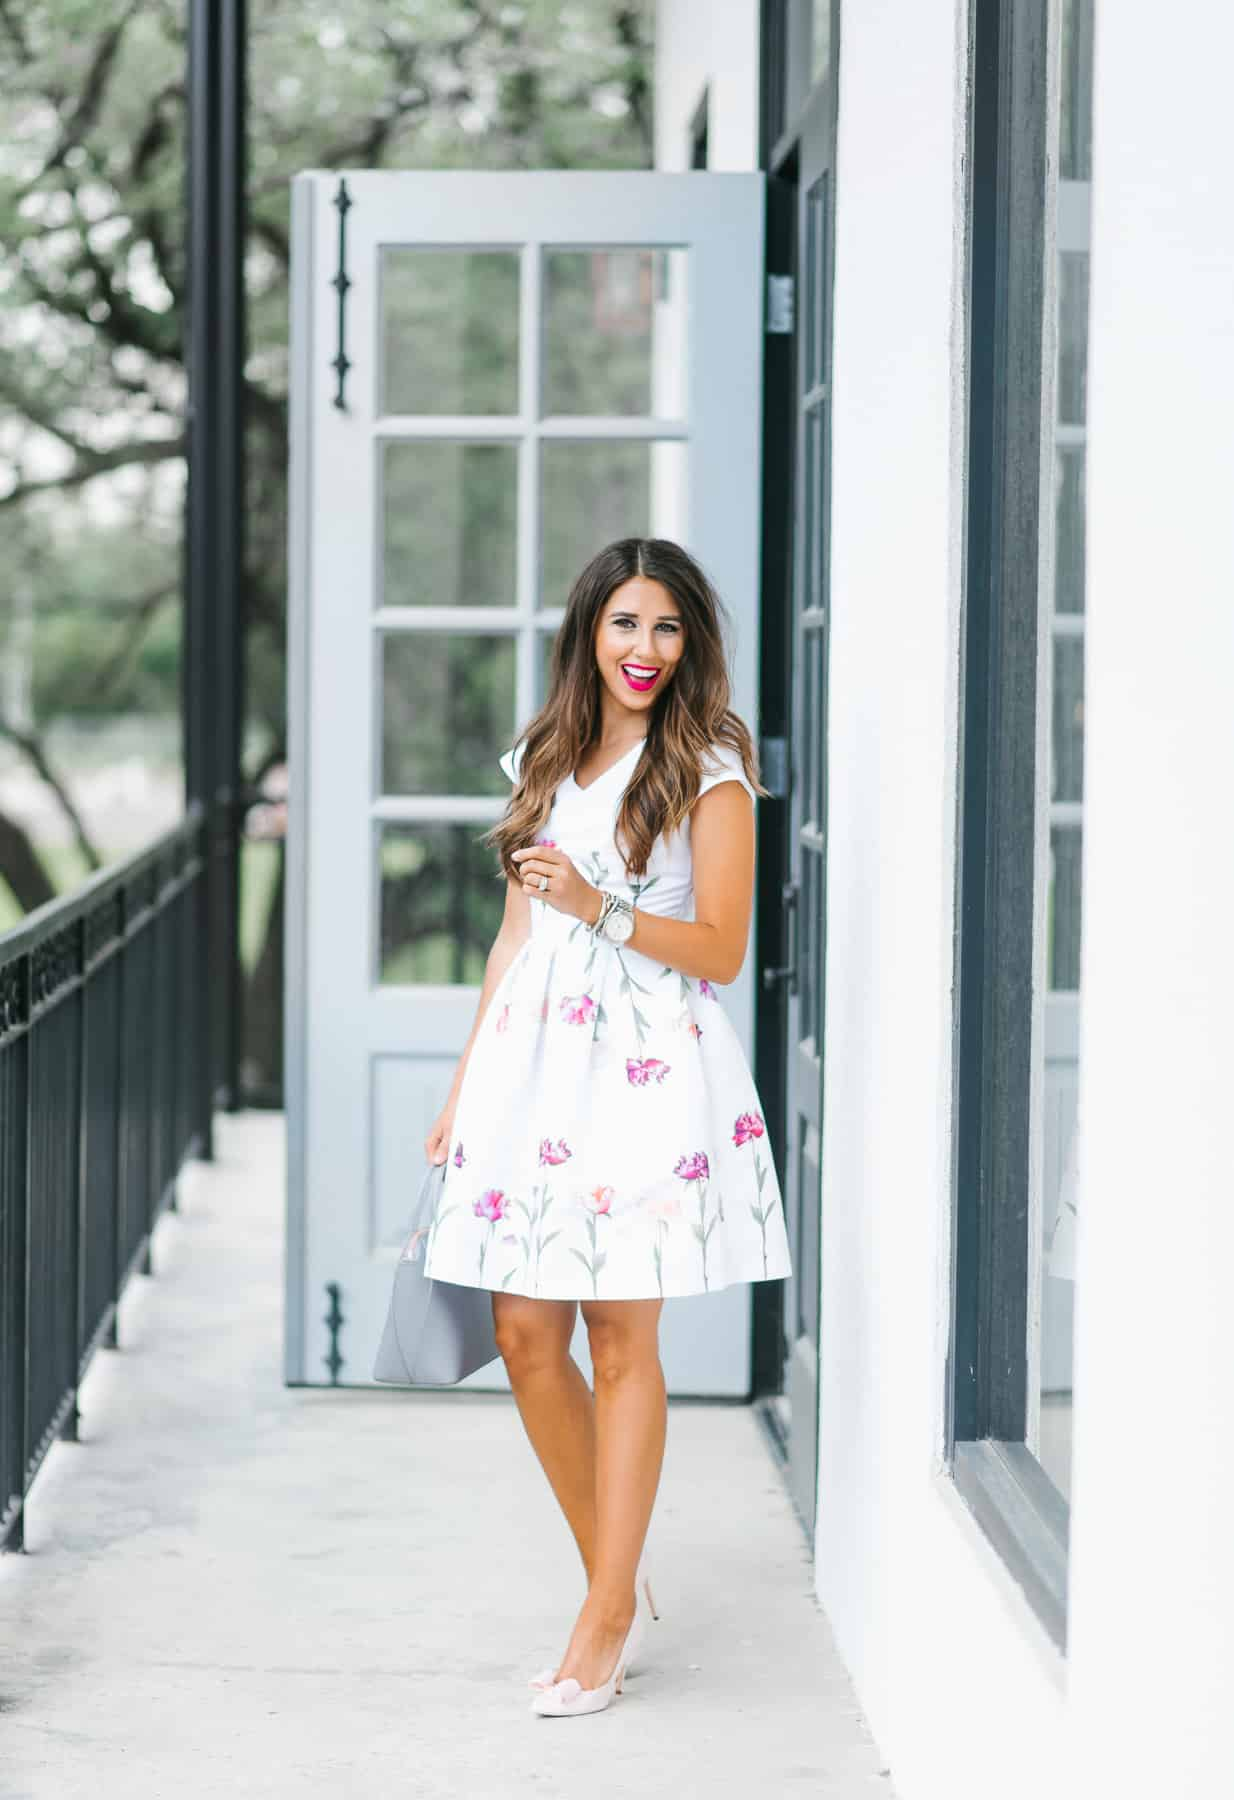 Ted Baker Tea Time, Ted Baker Tea Time Dress Up Buttercup, Houston Ted Baker, Ted Baker Houston, Ted Baker Galleria, Houston Fashion Blogger